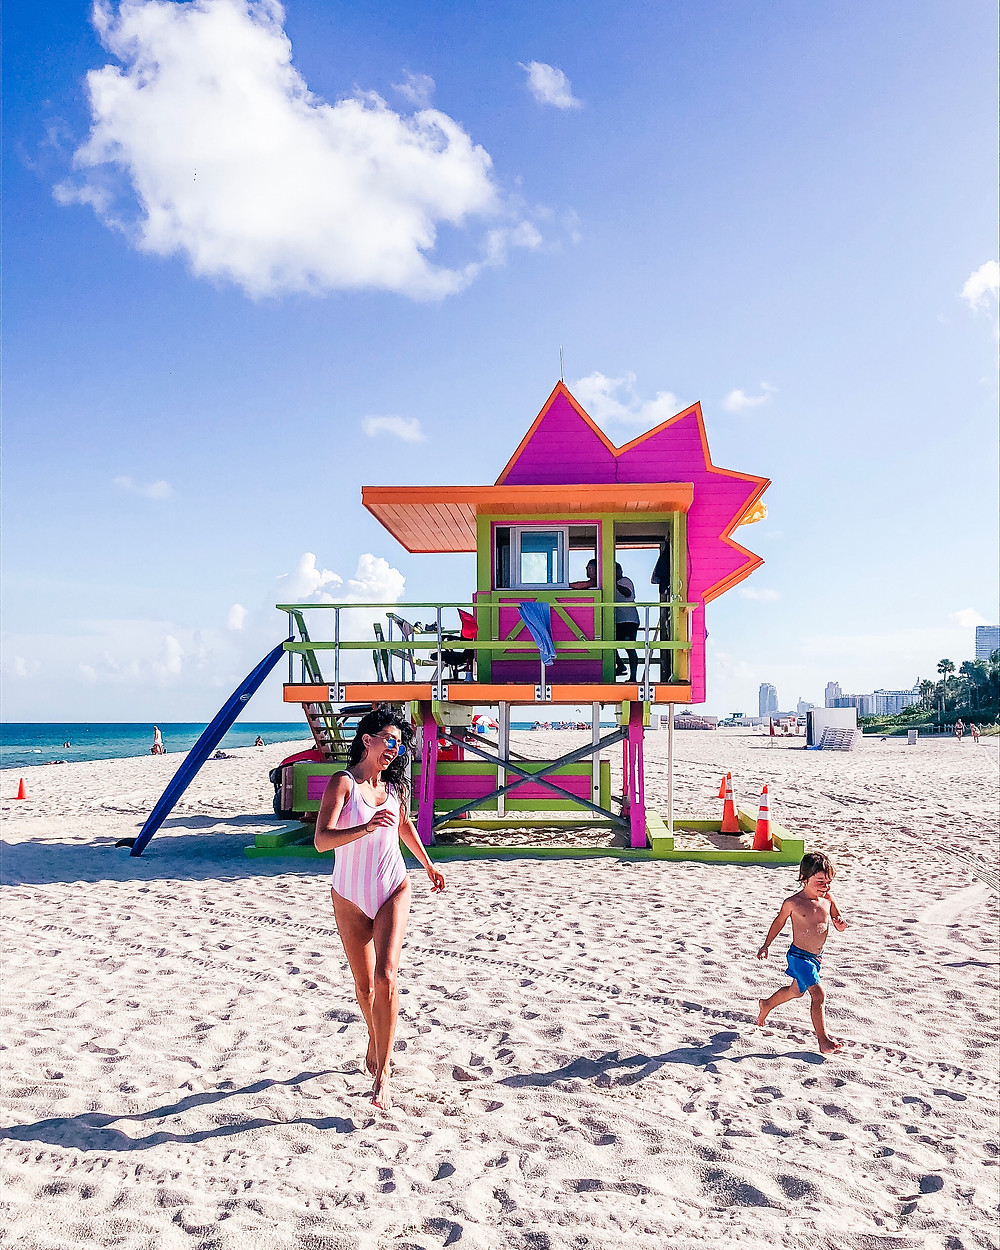 Miami Beach, Lifeguard tower in Miami Beach, Charlene Lizette and Charlie playing in Miami Beach, mommy and me photography, mommy and me running on the beach